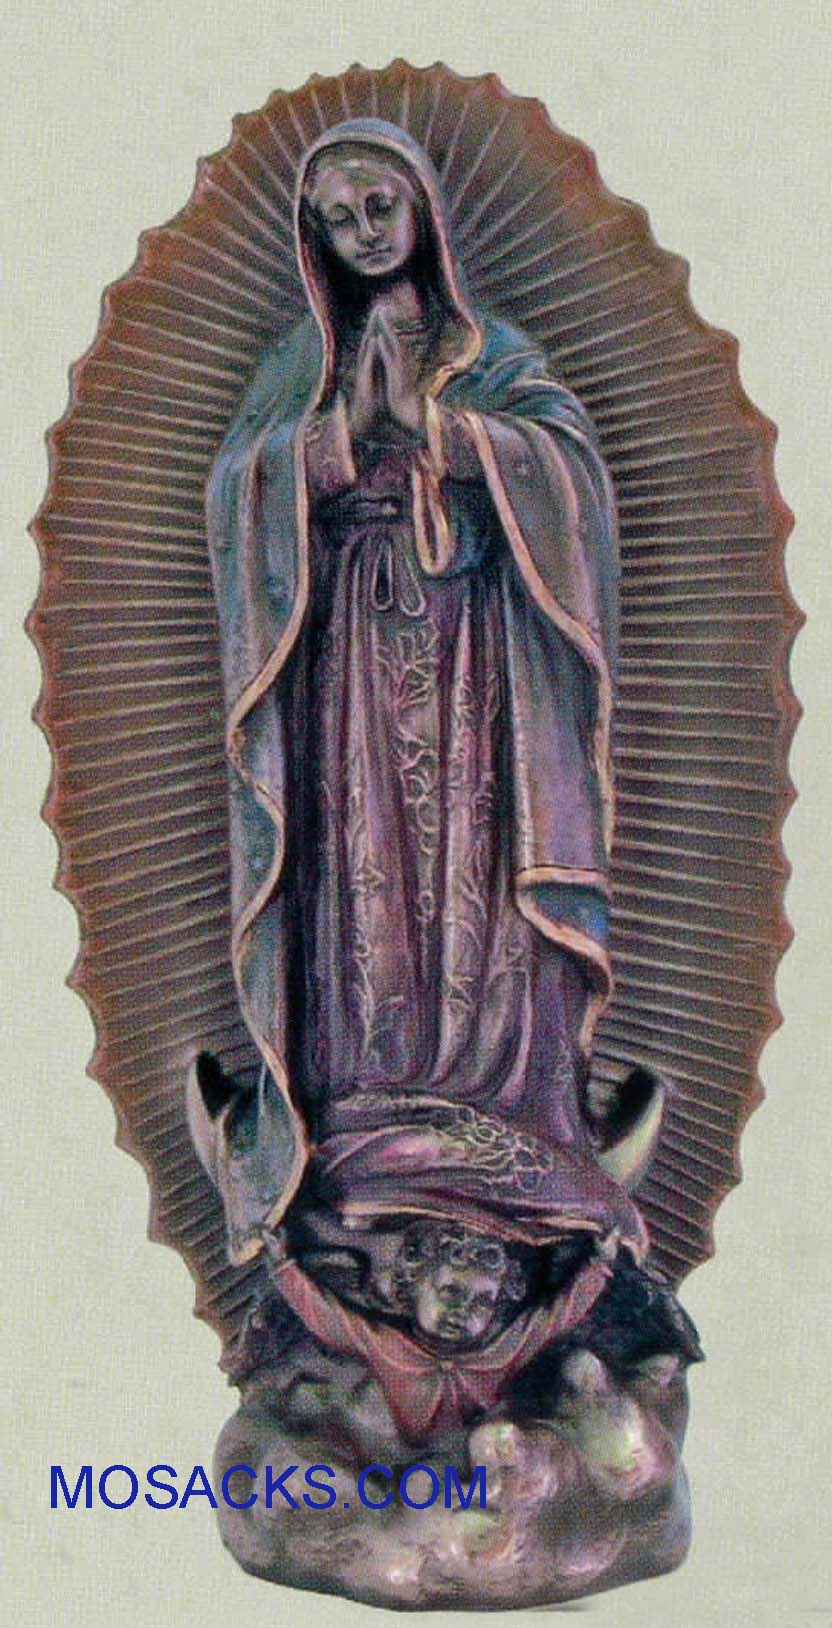 "Our Lady of Guadalupe Veronese Bronze Statue 9 1/2"", SR-74694"